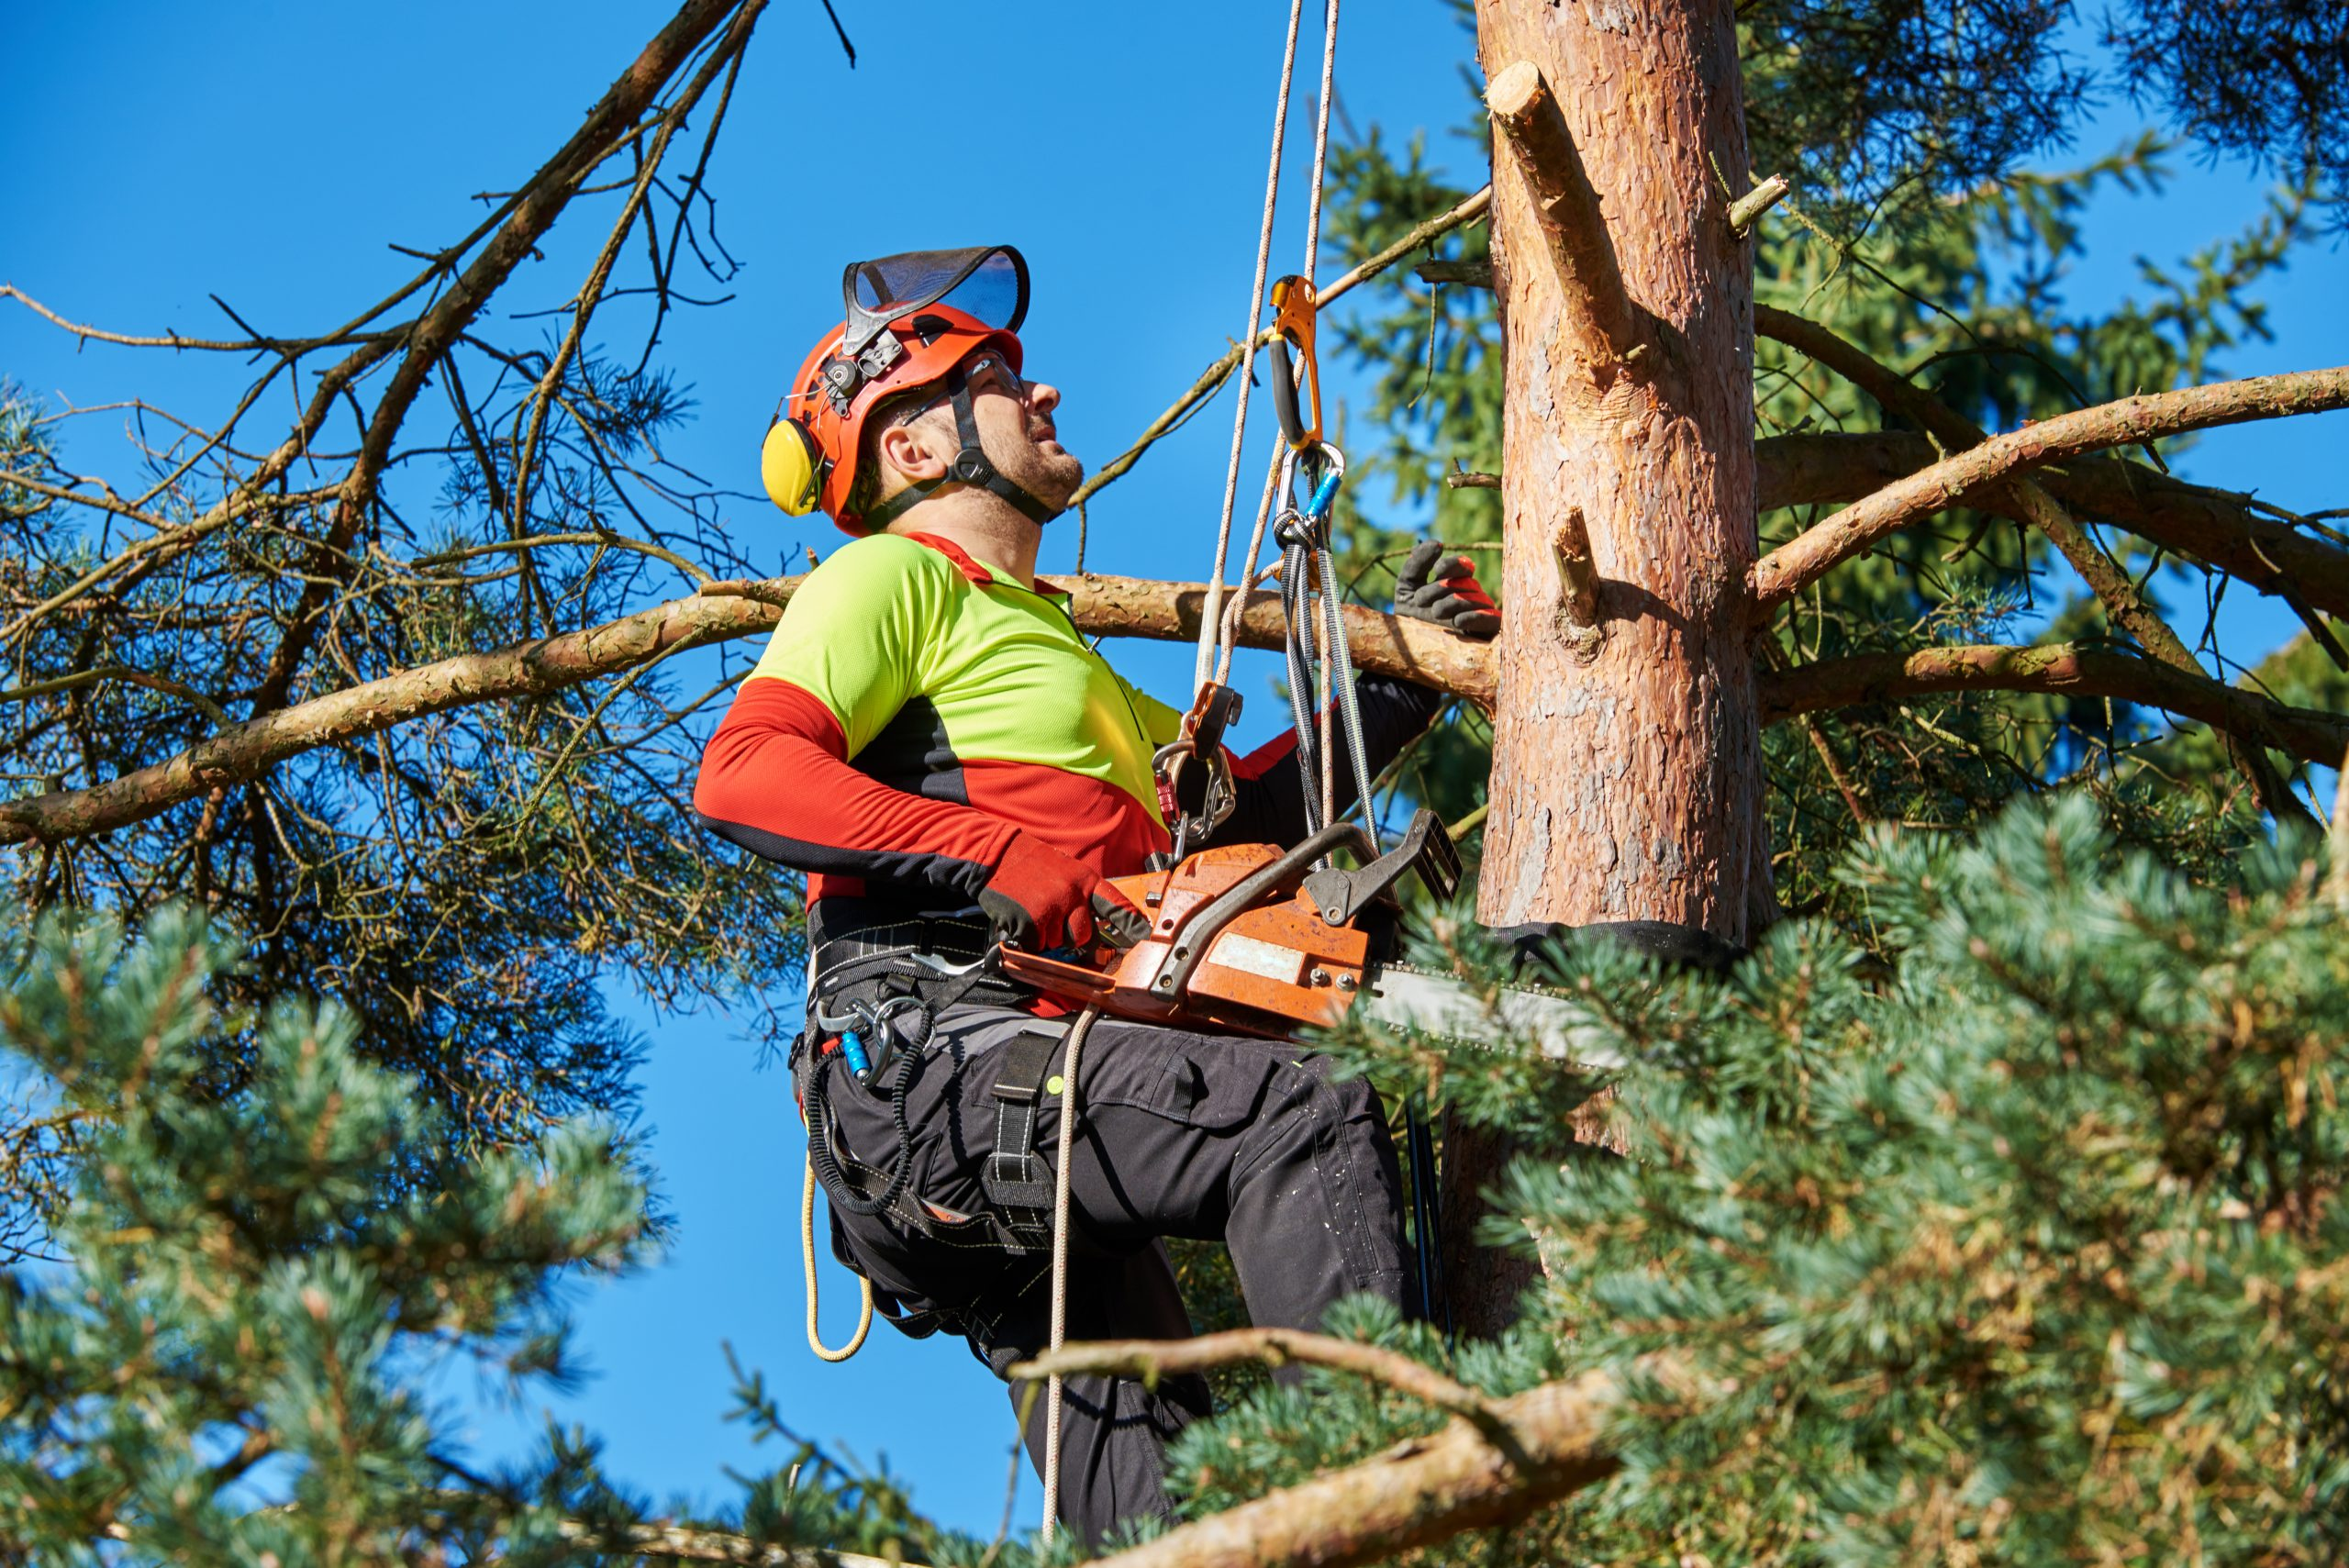 Lumberjack,With,Saw,And,Harness,Climbing,A,Tree